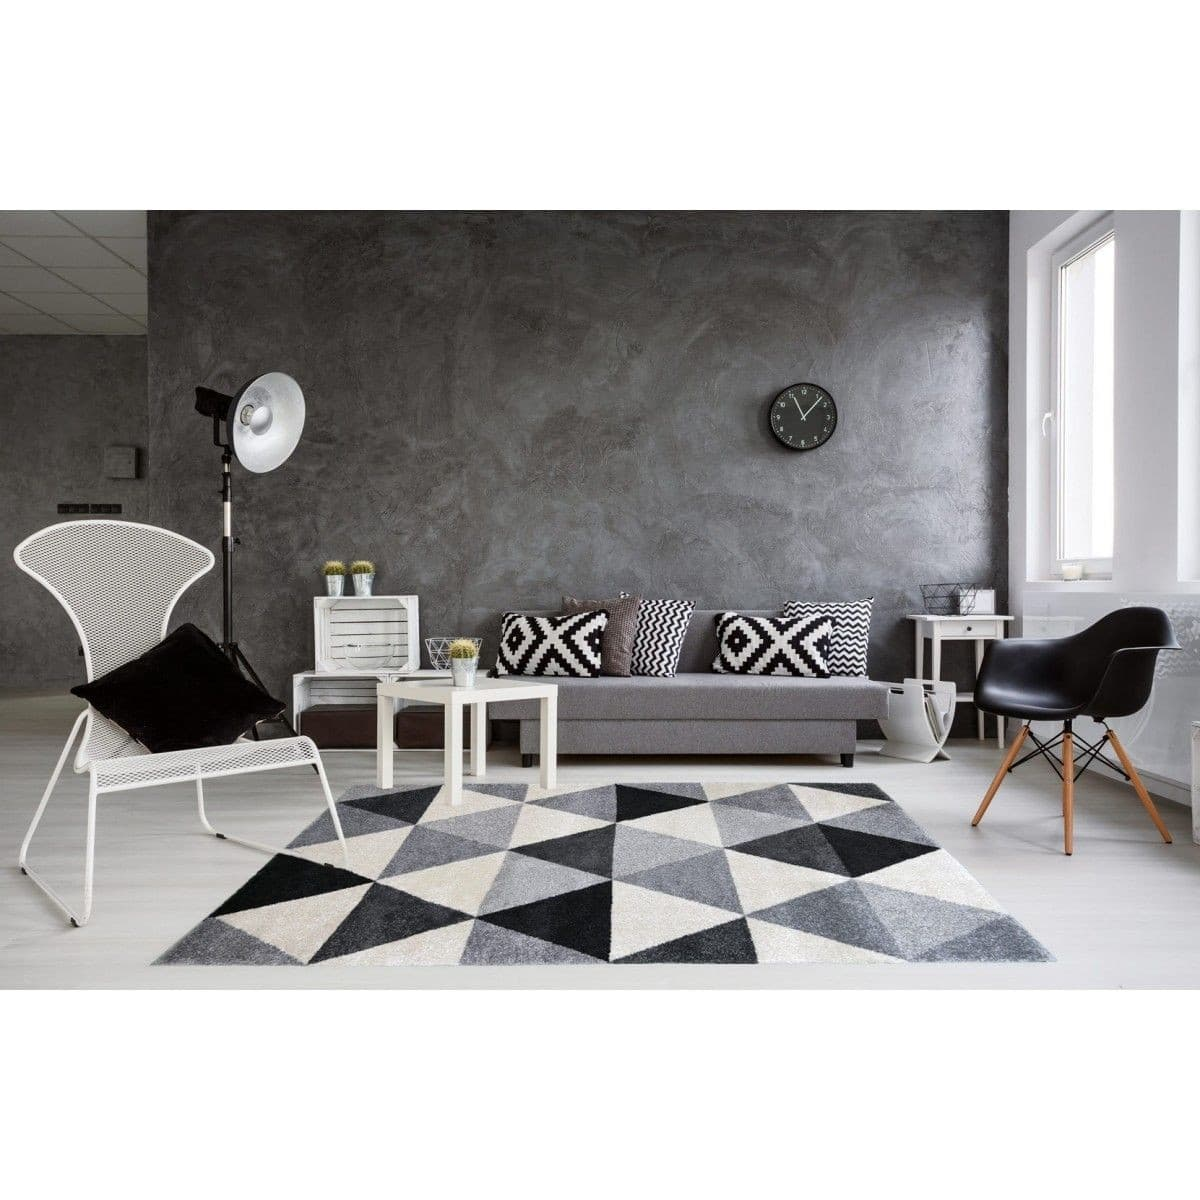 tapis scandinave 50 mod les que l 39 on aimerait avoir chez soi 2018. Black Bedroom Furniture Sets. Home Design Ideas